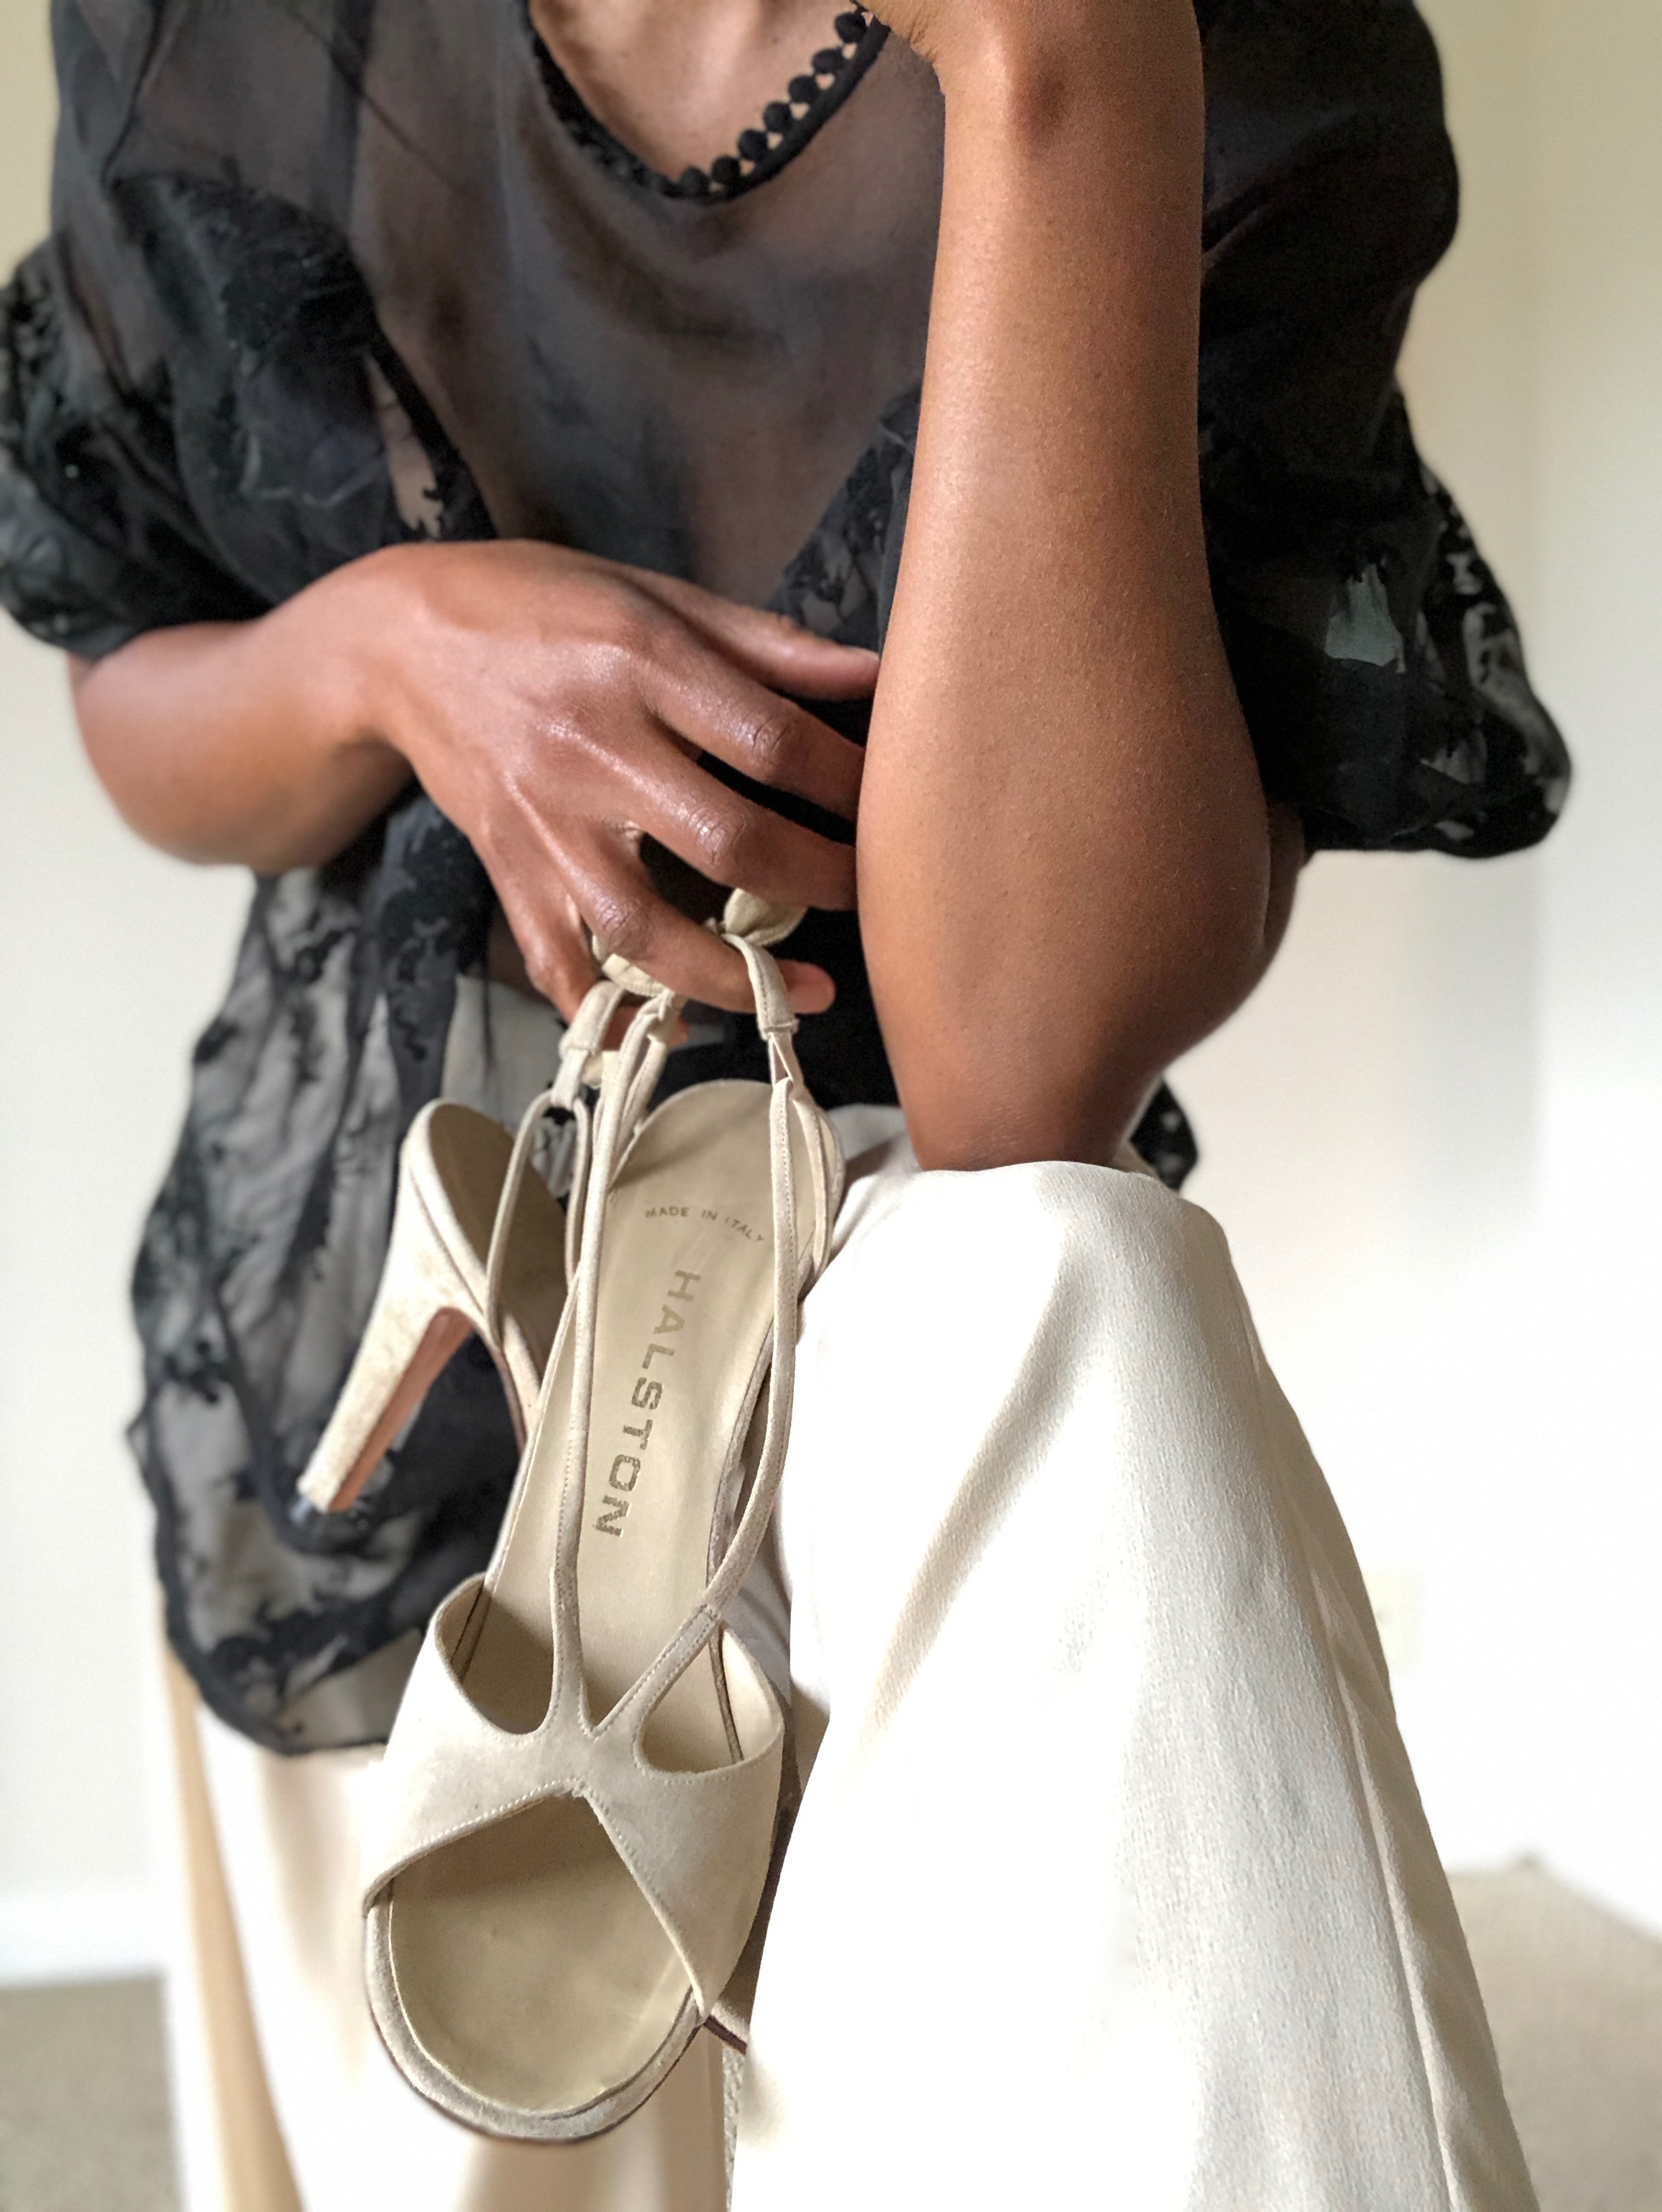 #Afterthedance Halston  suede shoes , Sheer  floral blouse  and beige  wide leg chiffon pants